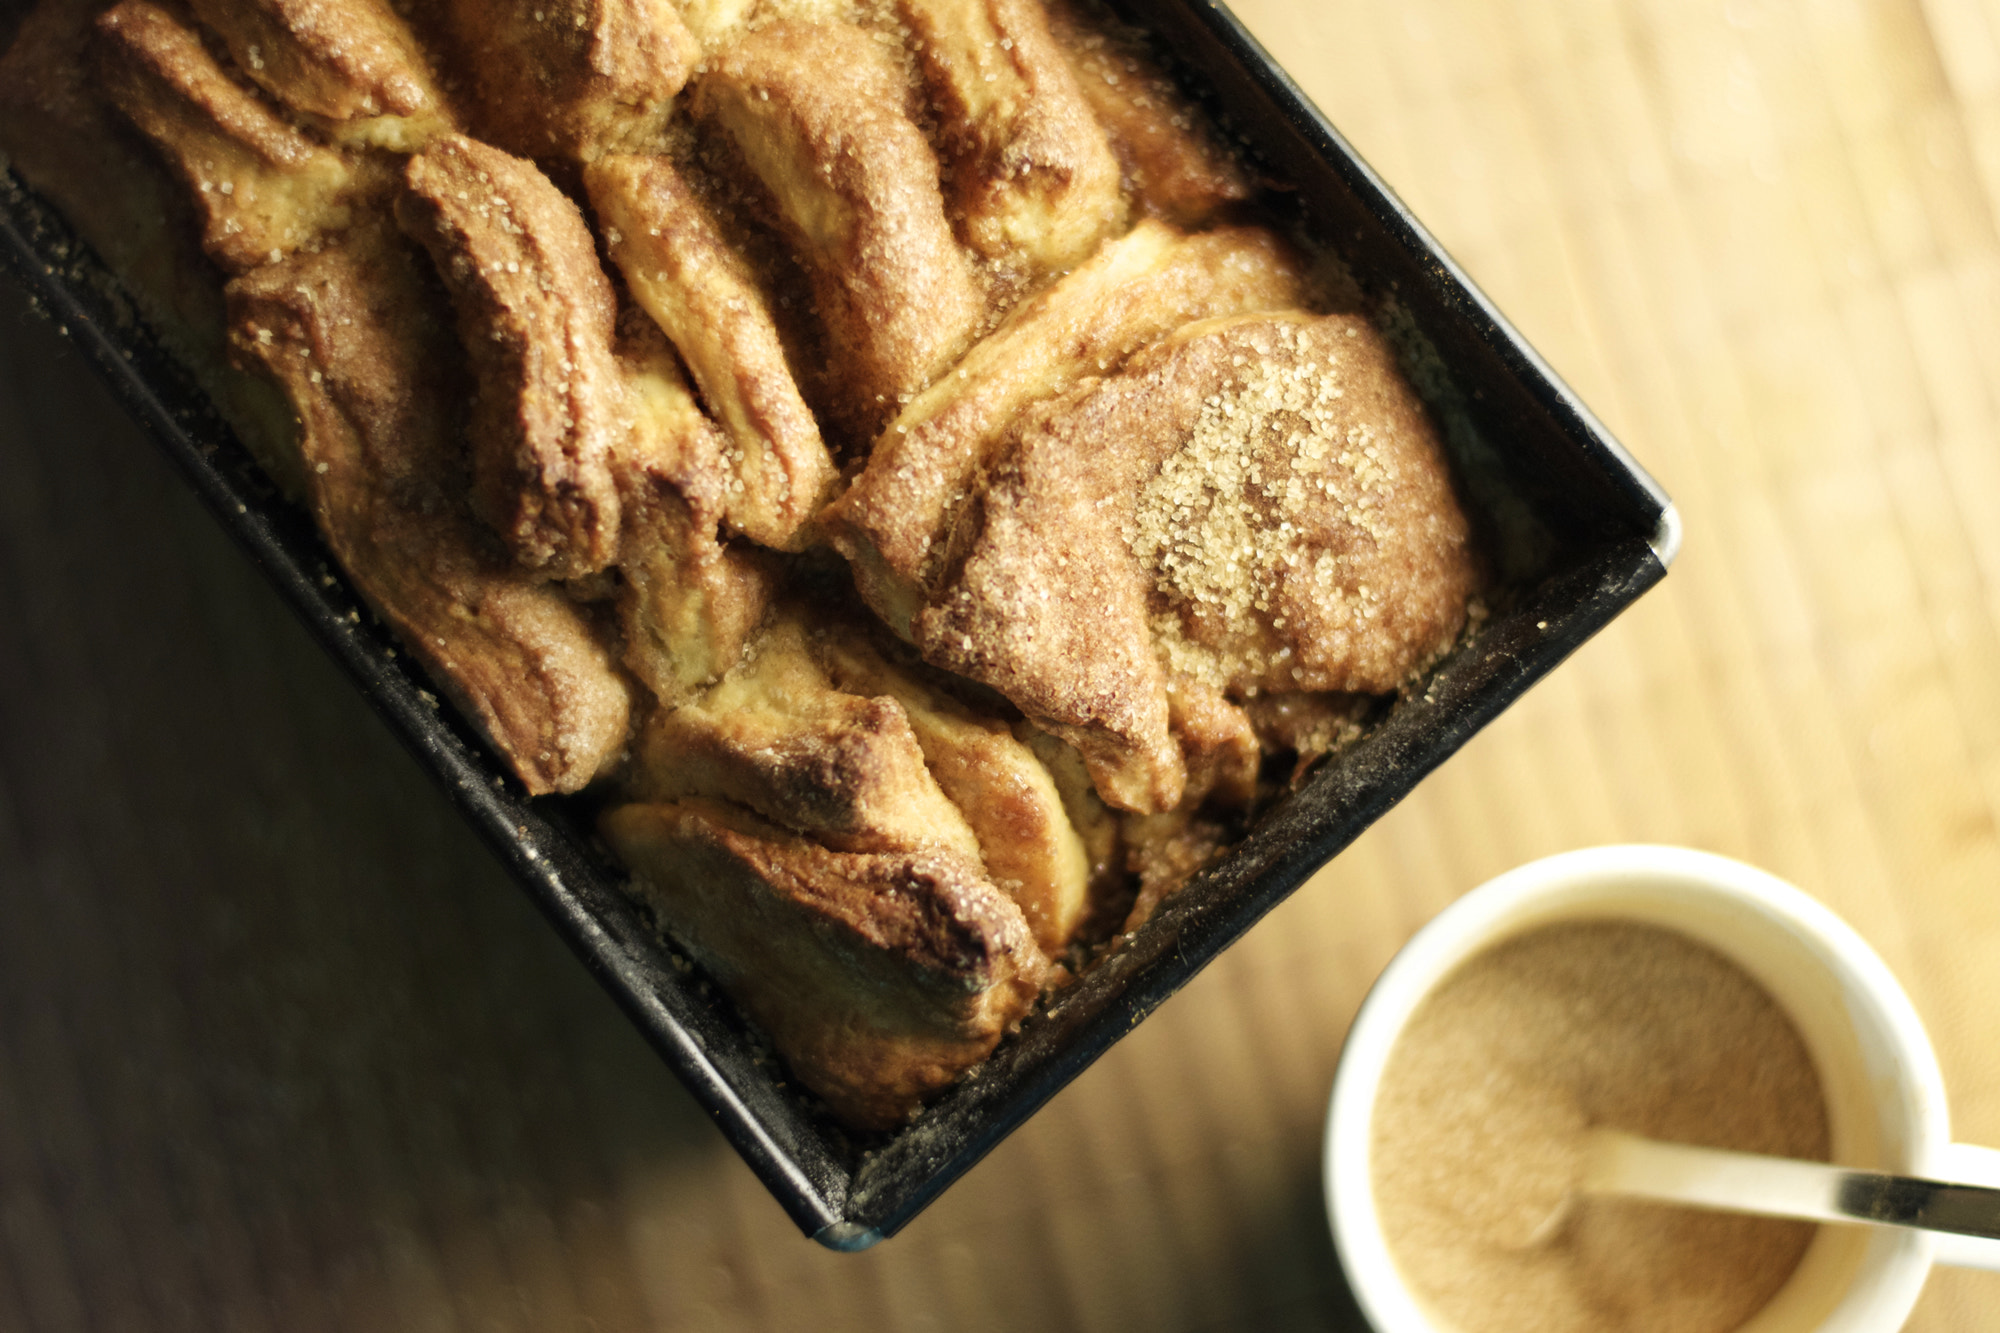 Photograph cinnamon pull apart bread by Angeli Schimmack on 500px